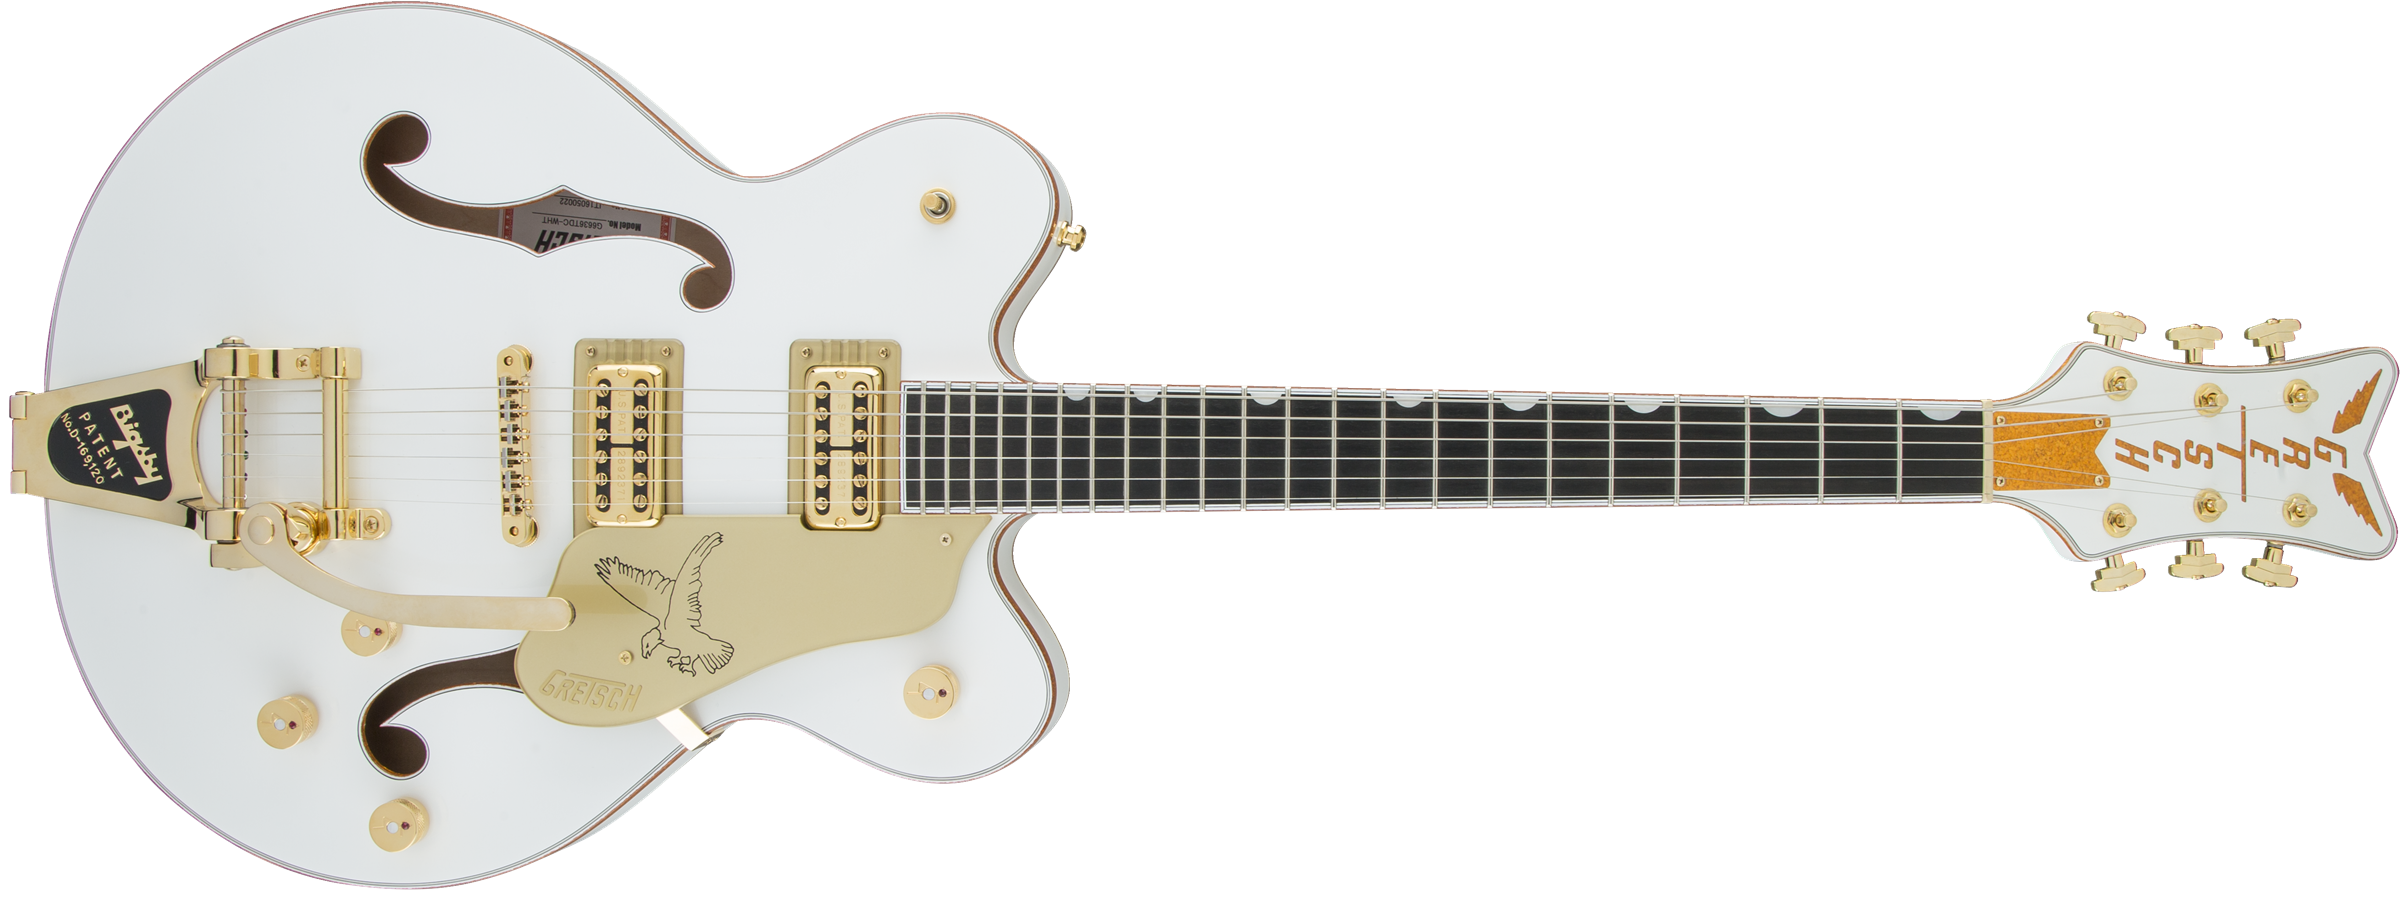 GRETSCH-G6636T-Players-Edition-Falcon-Center-Block-Double-Cut-with-String-Thru-Bigsby-FilterTron-Pickups-White-sku-571000156